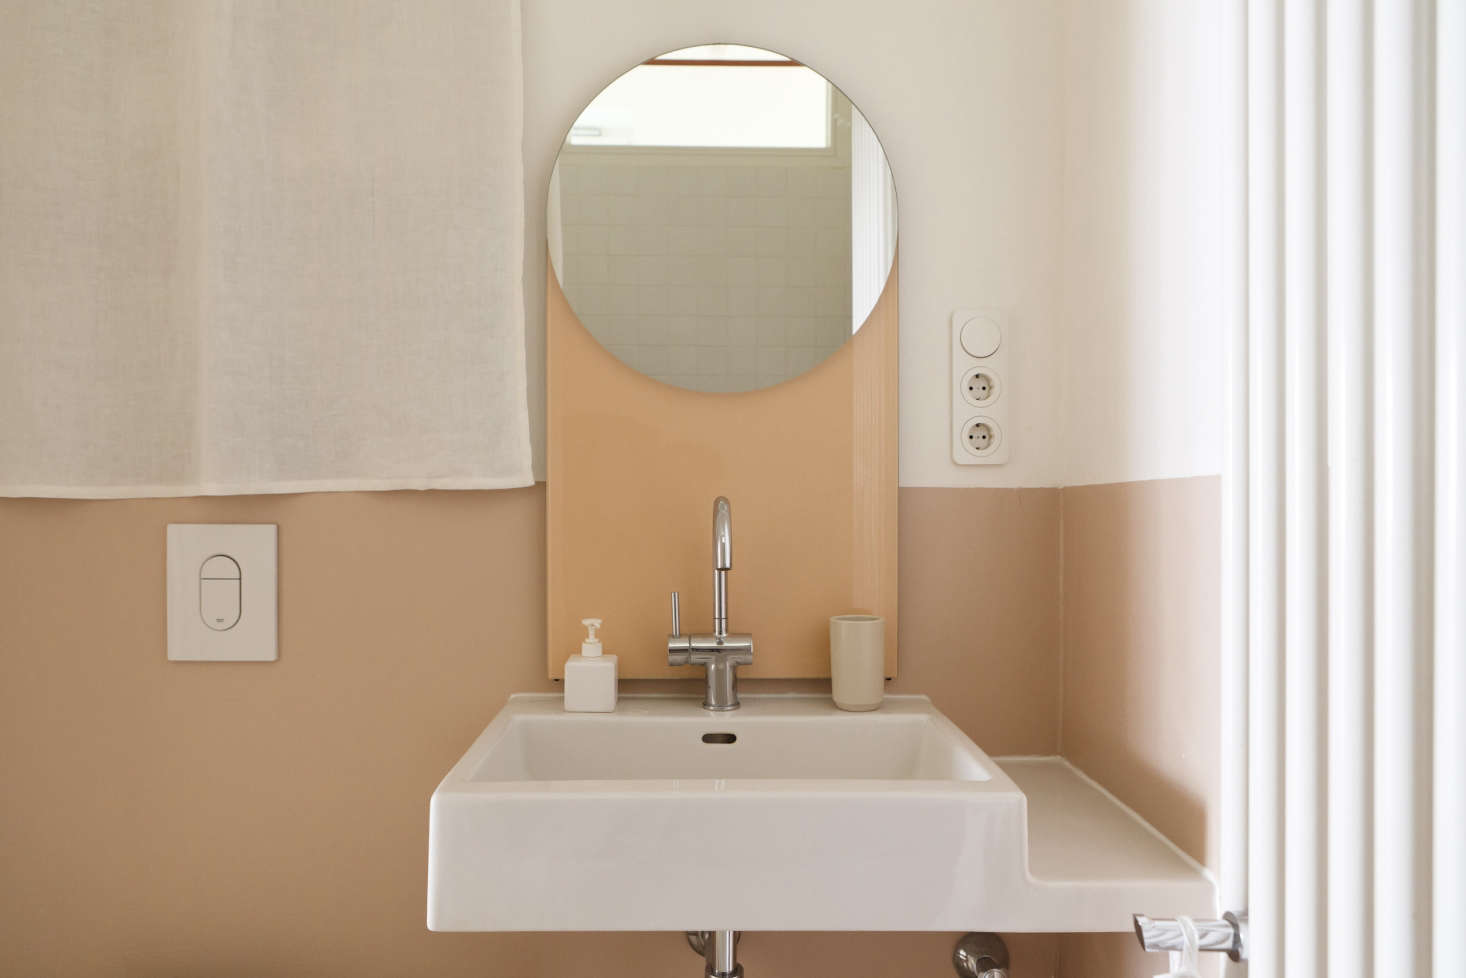 A Geometric Peach Toned Mirror Completes The Palette.